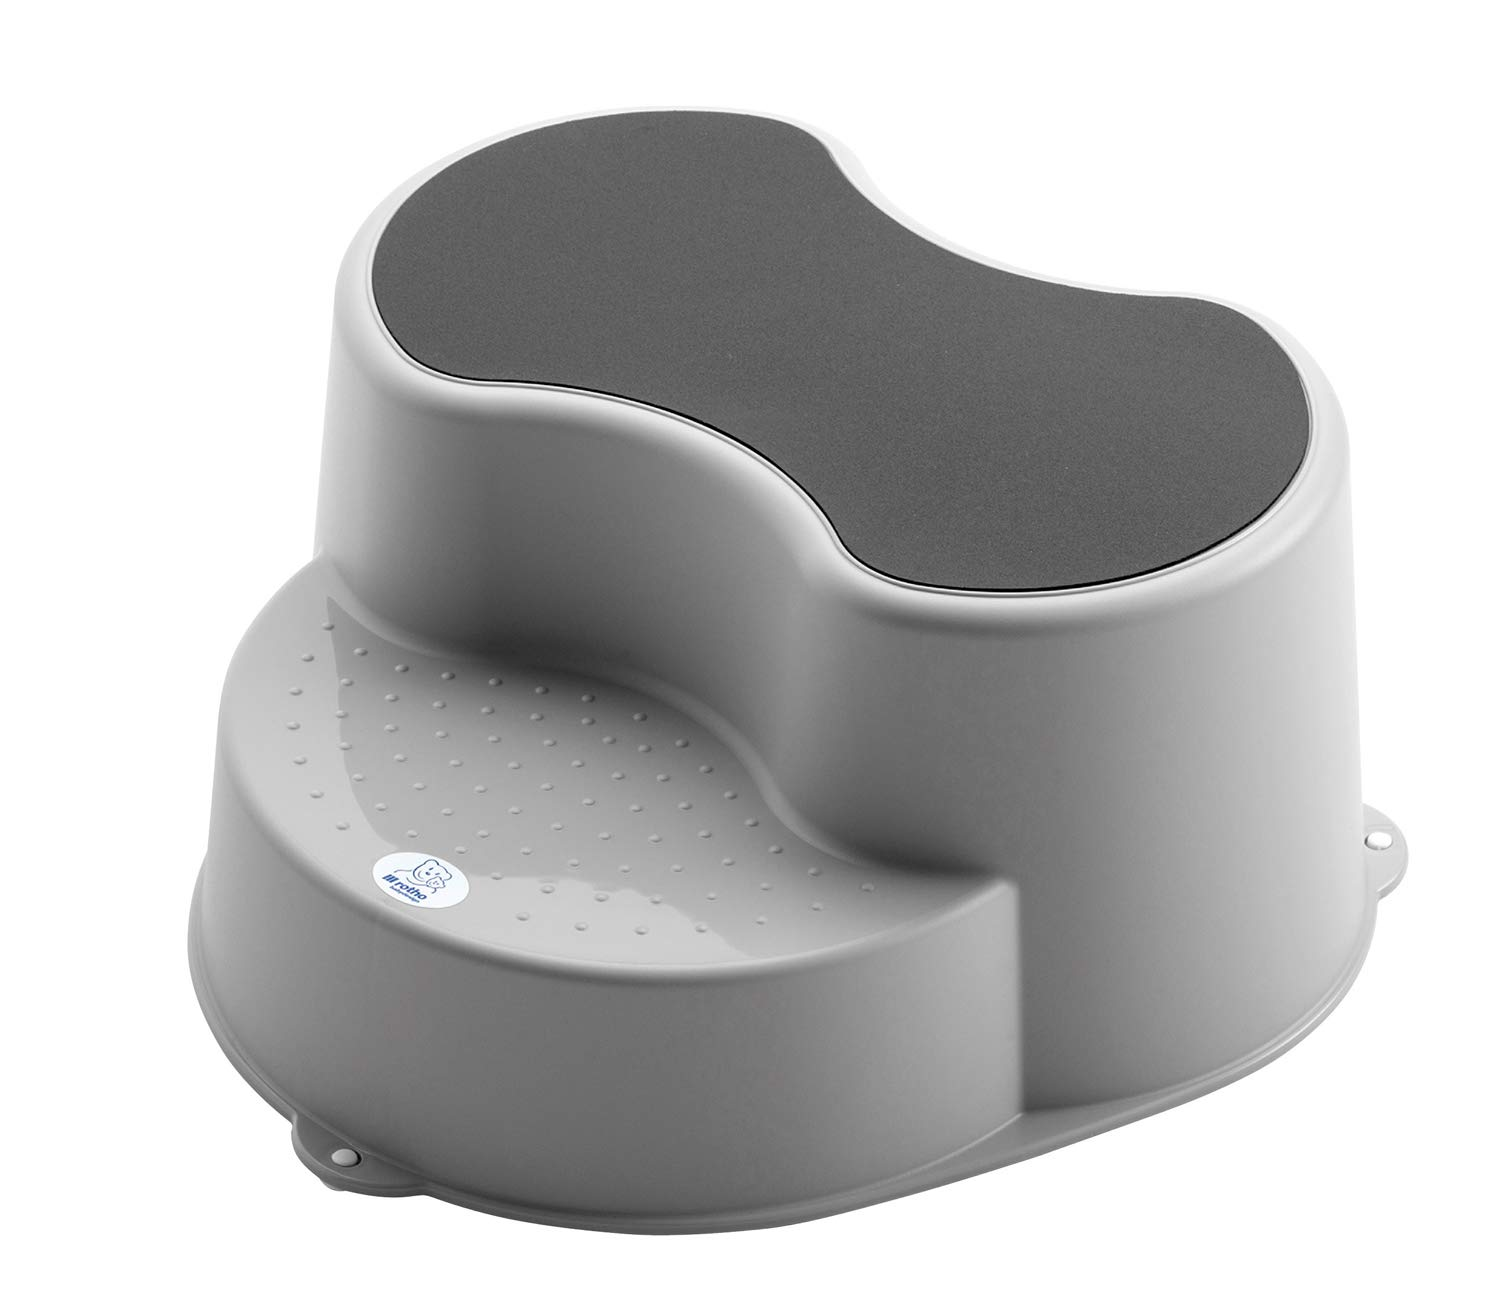 Rotho Babydesign Top Step Stool (Silver) BabyLand 20005 0070